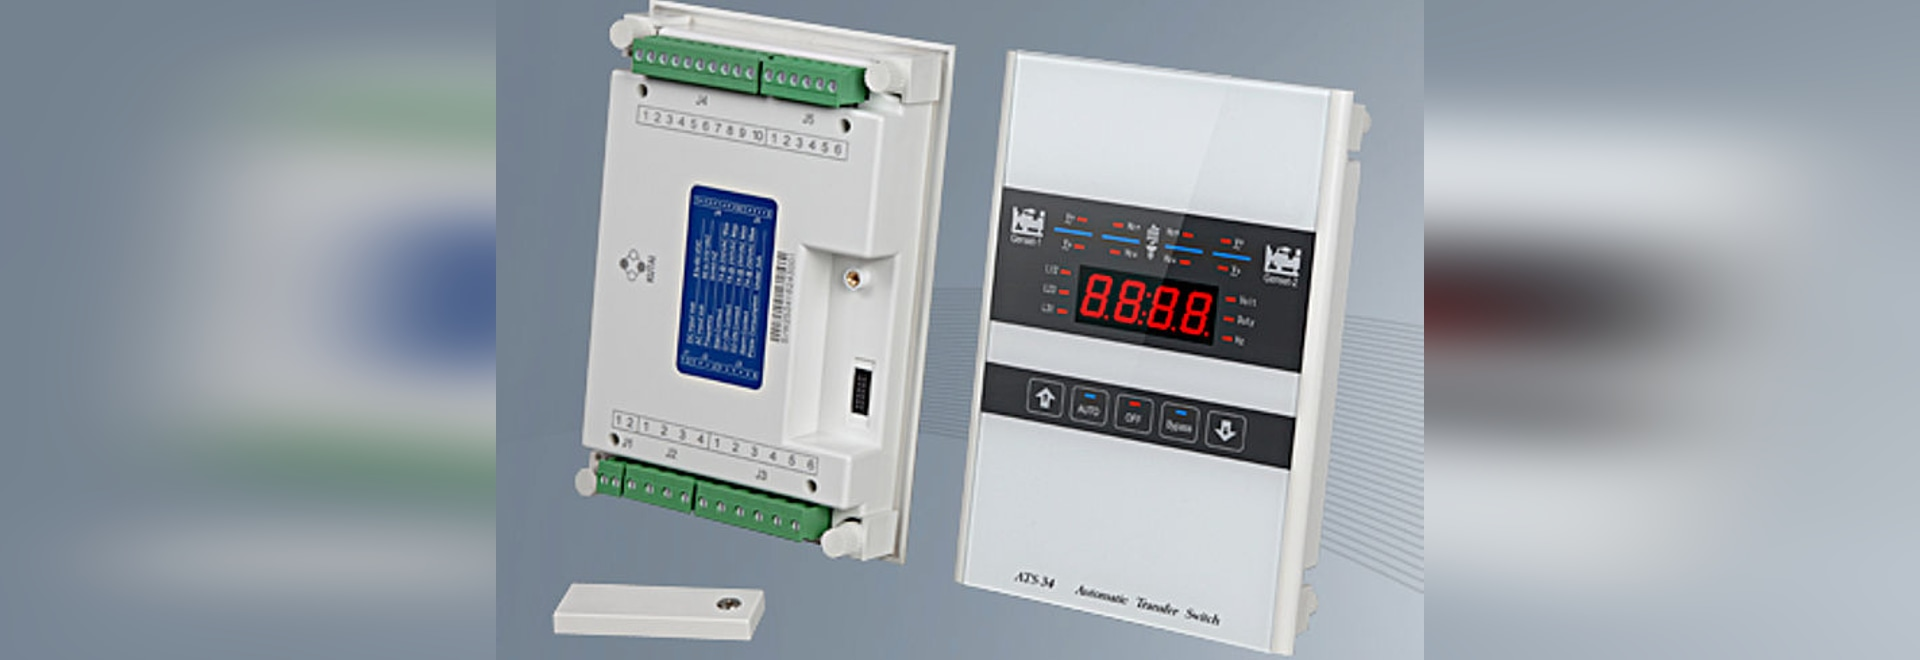 Ats 34 Transfer Switch Controller For Power Systems With Dual Generator View Automatic Redundant